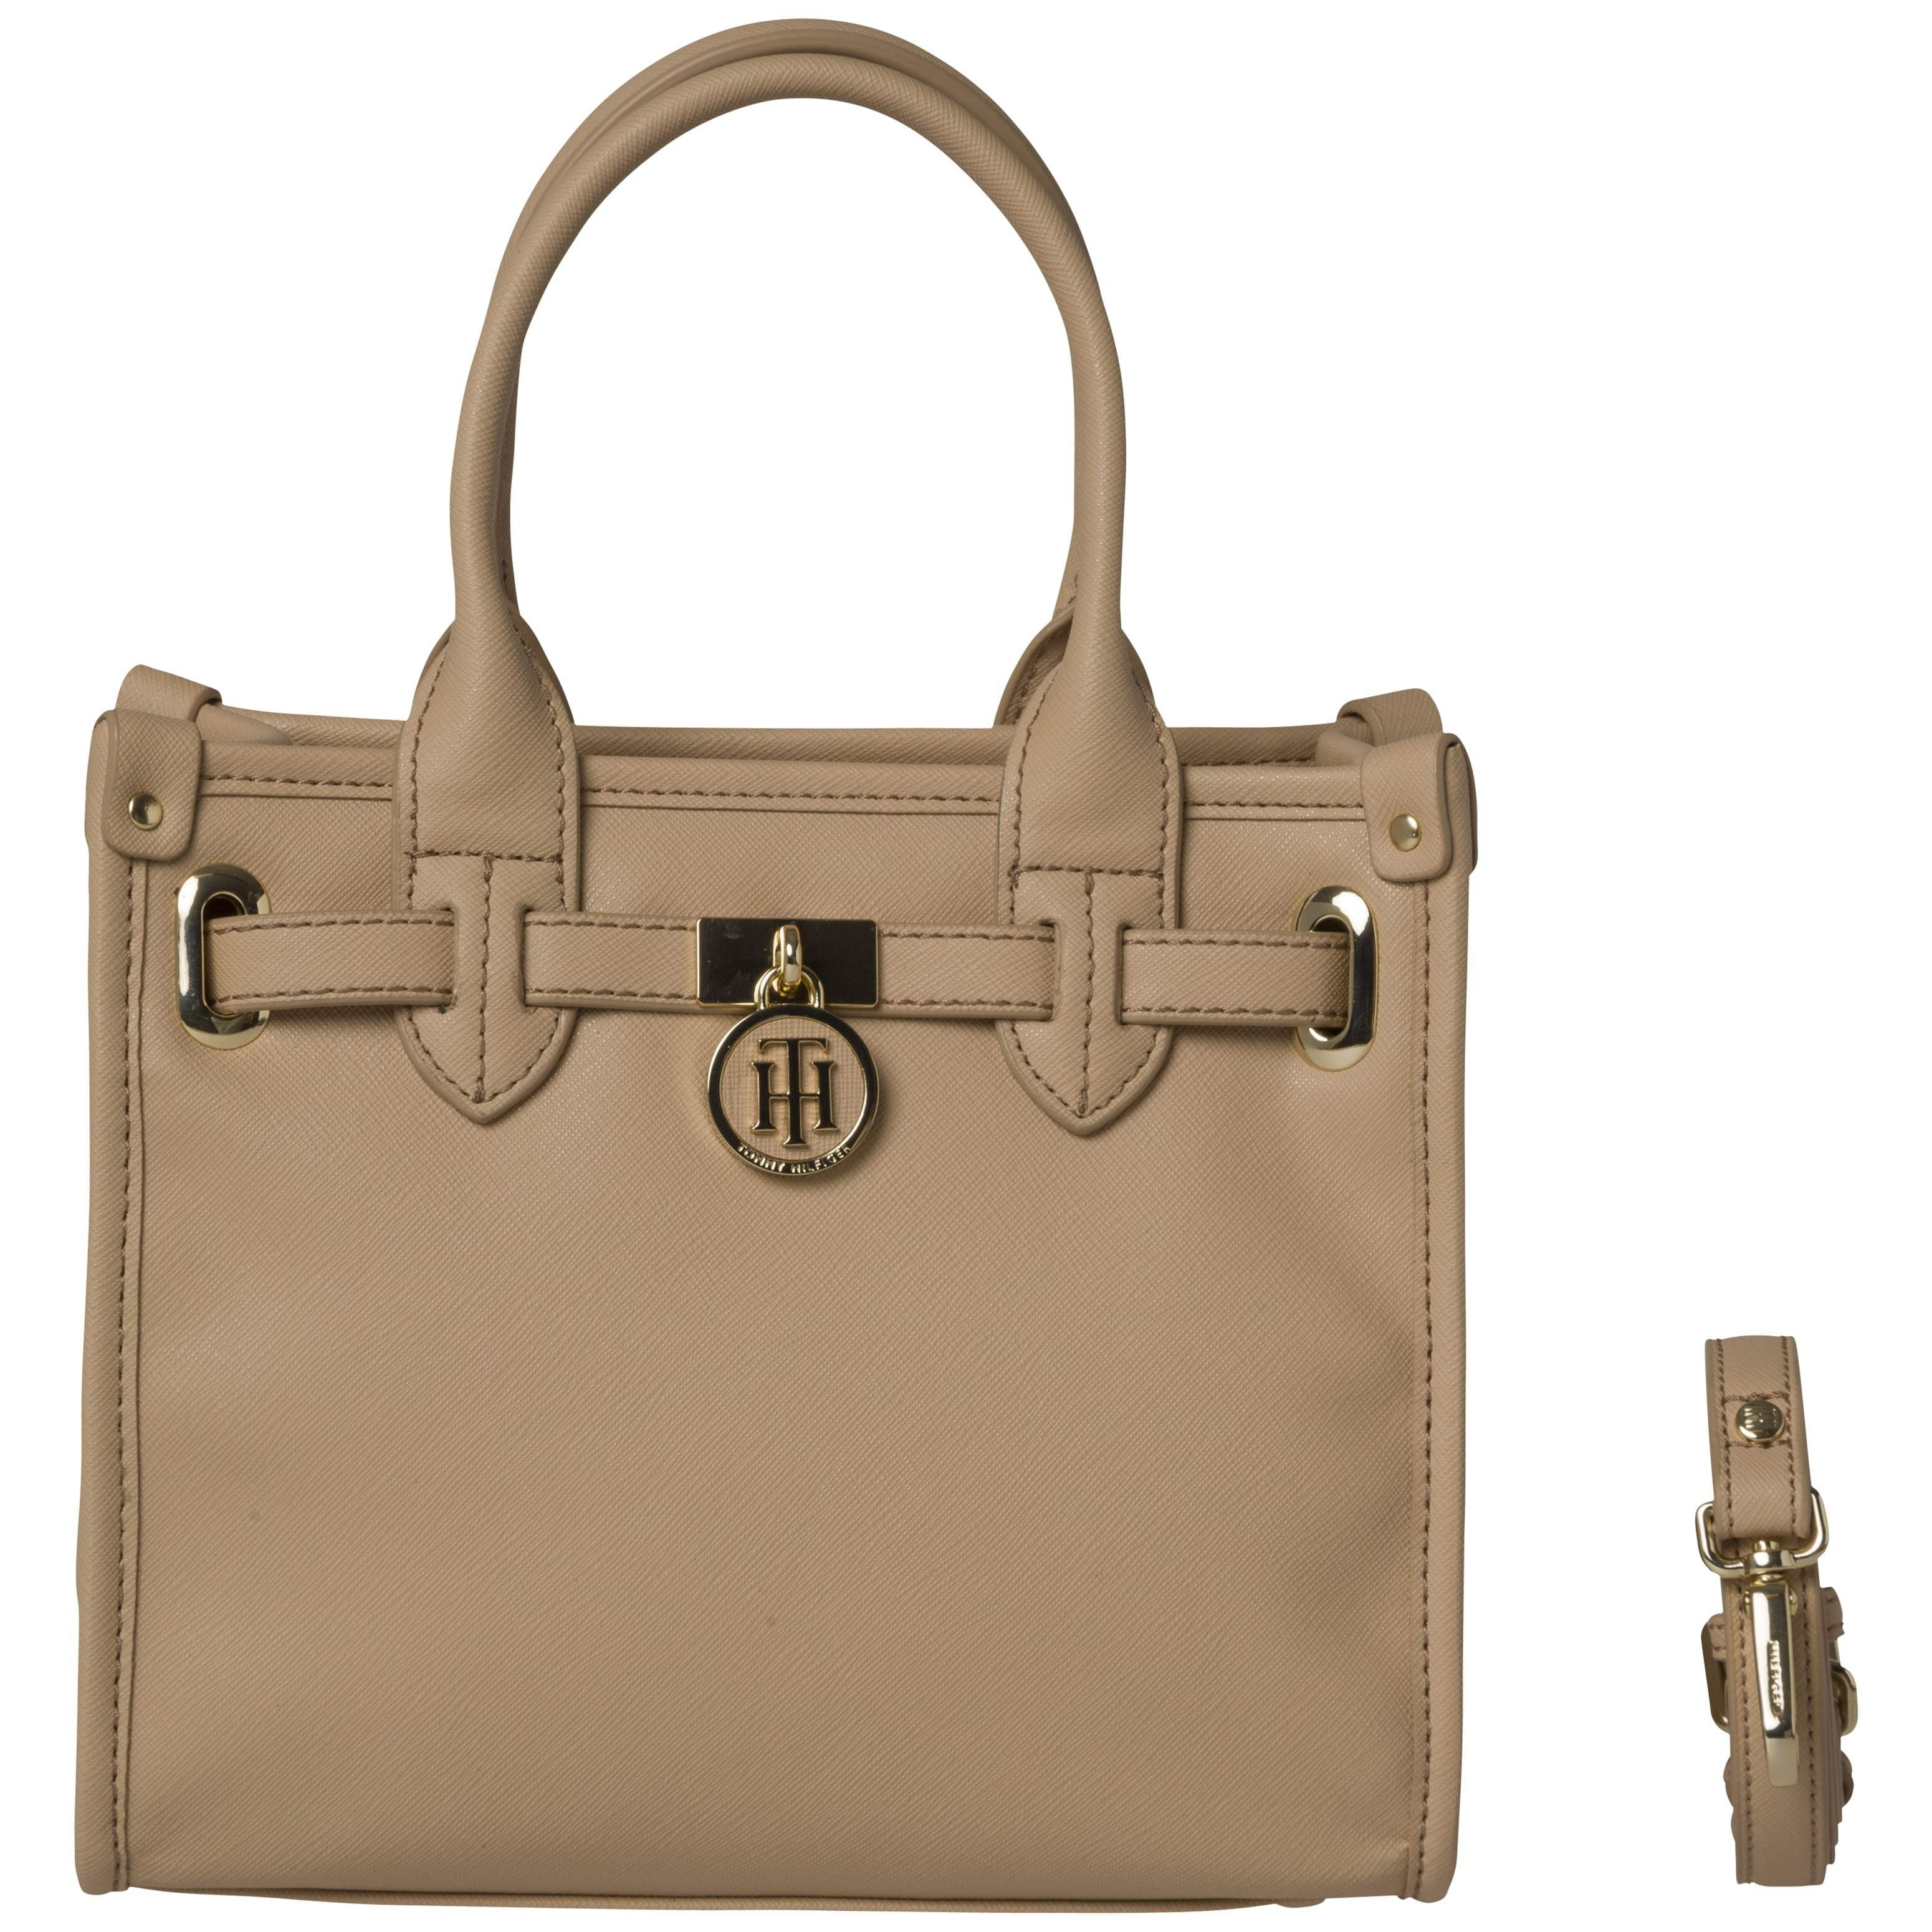 Tommy Hilfiger Handtasche »AMERICAN ICON MINI TOTE SOLID«